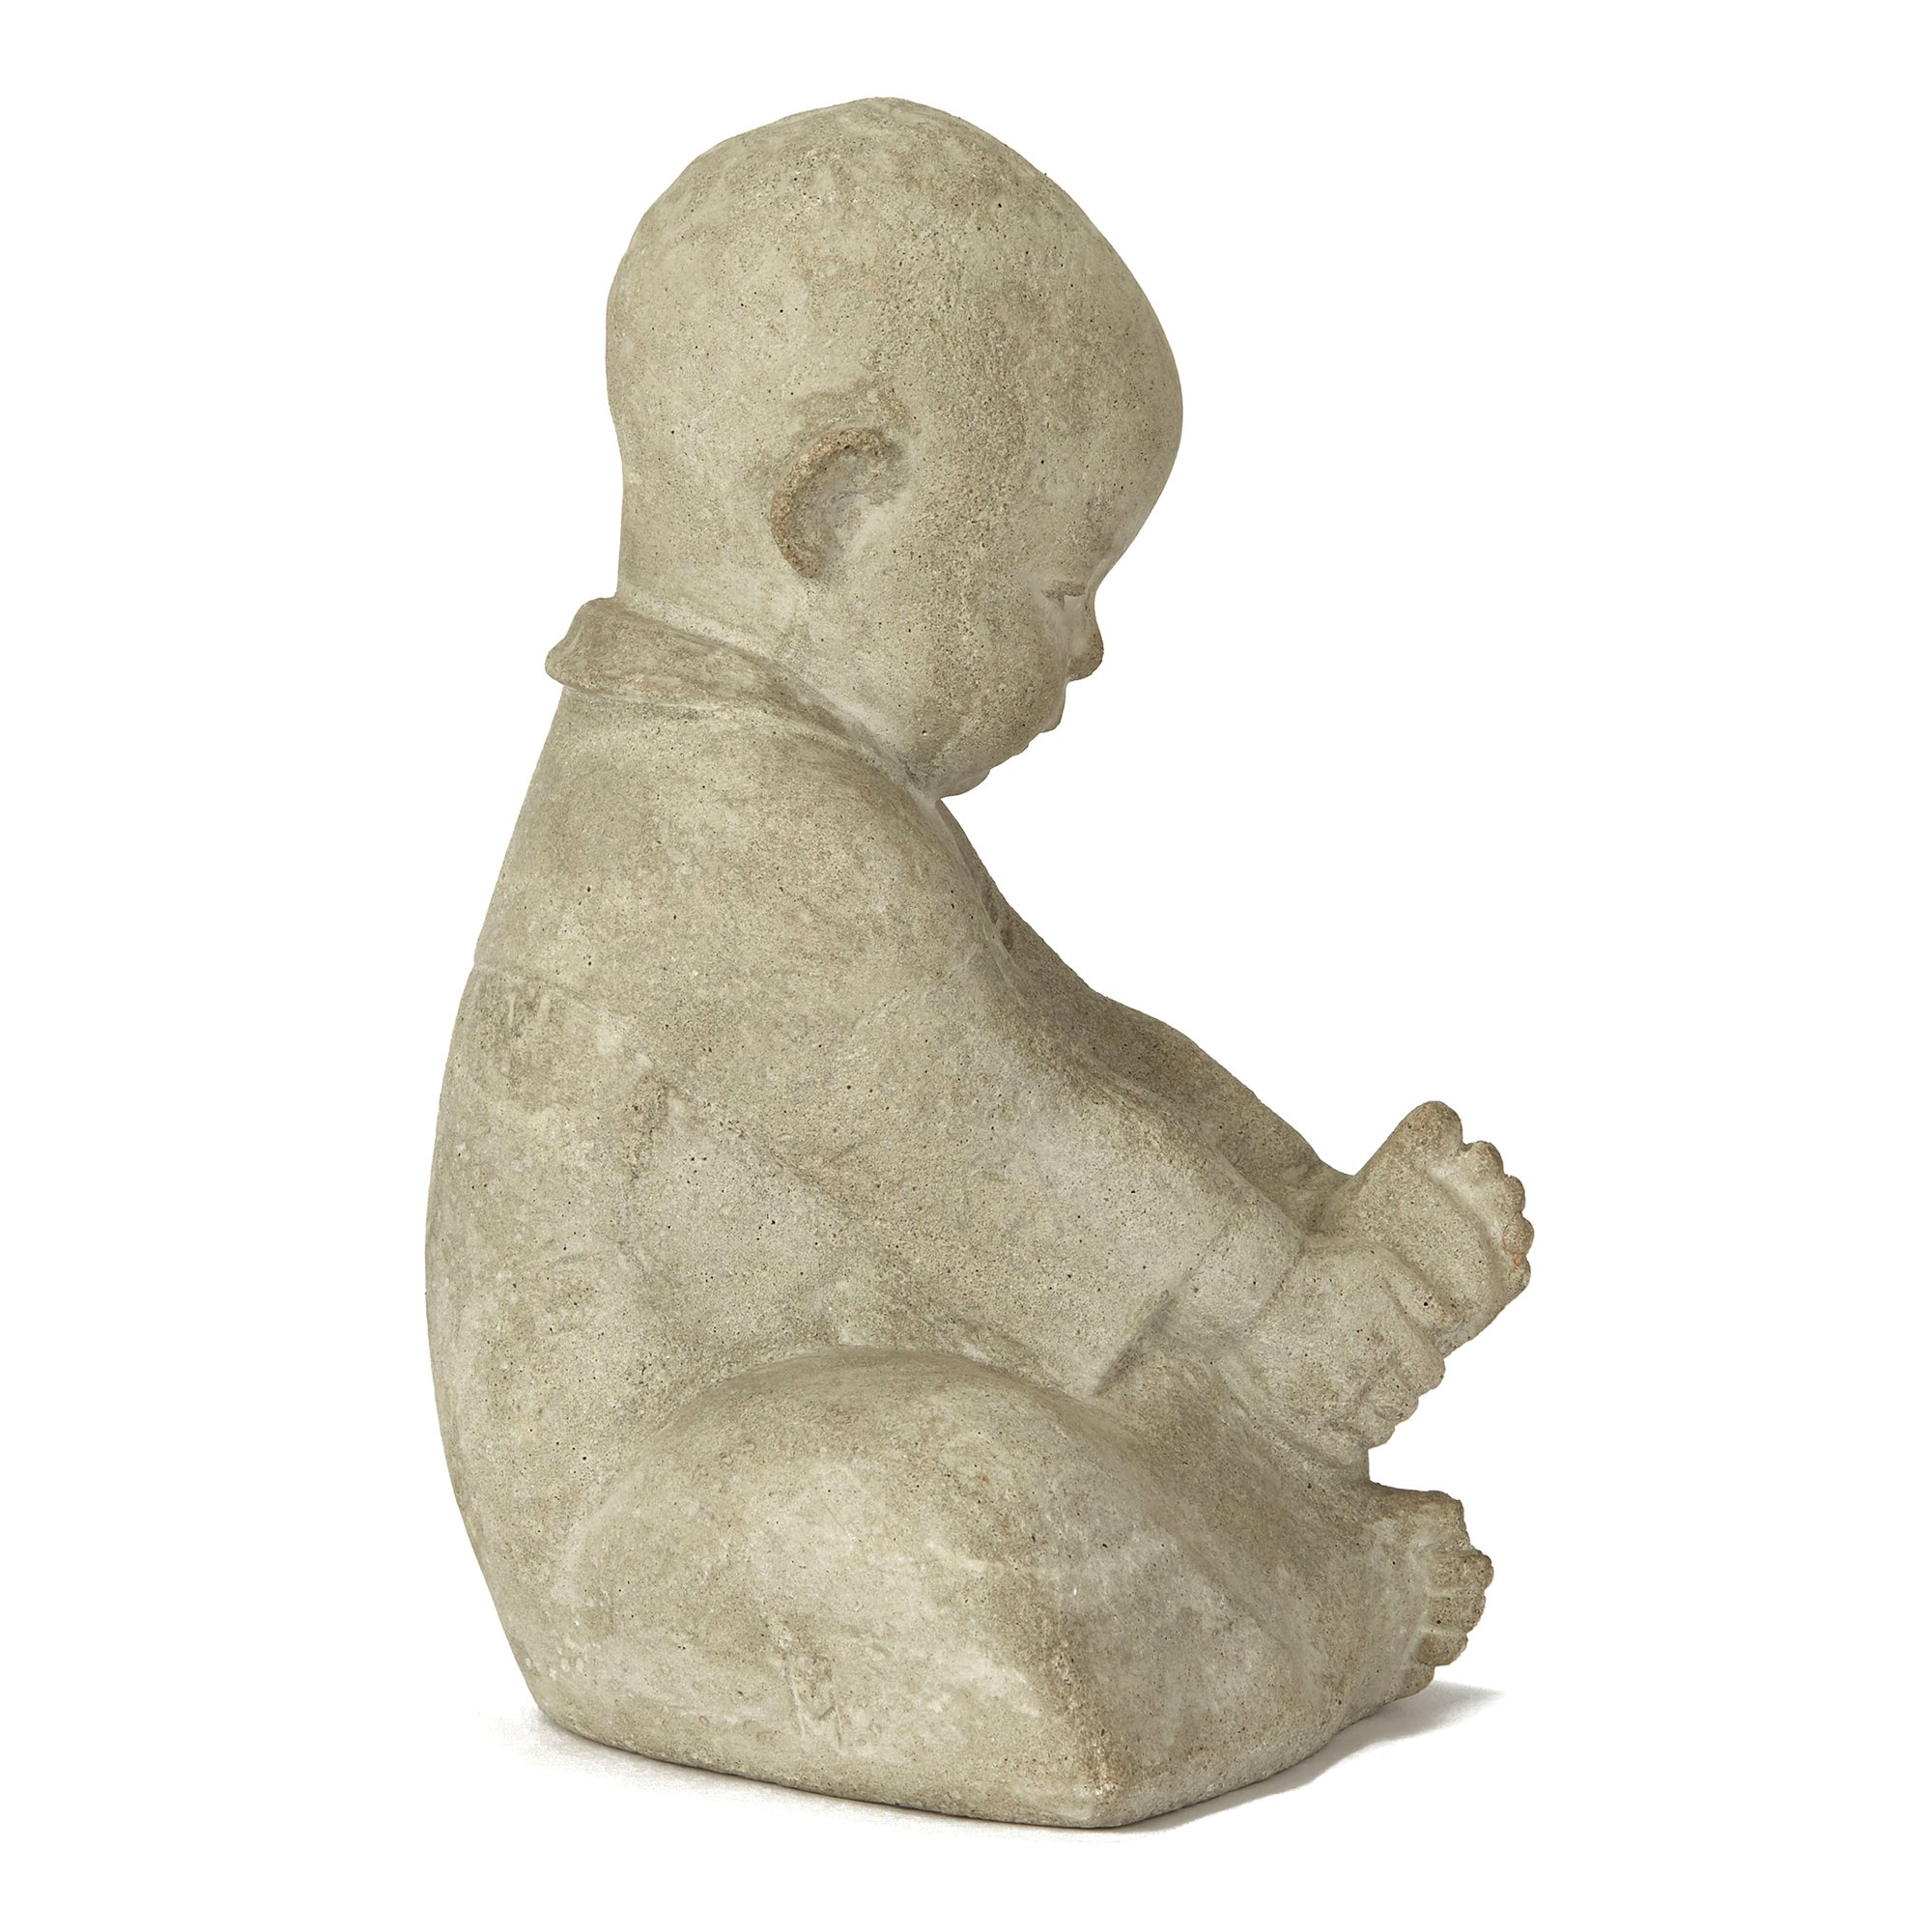 CONTINENTAL CARVED STONE FIGURE OF A SEATED INFANT 20TH C. 20th Century